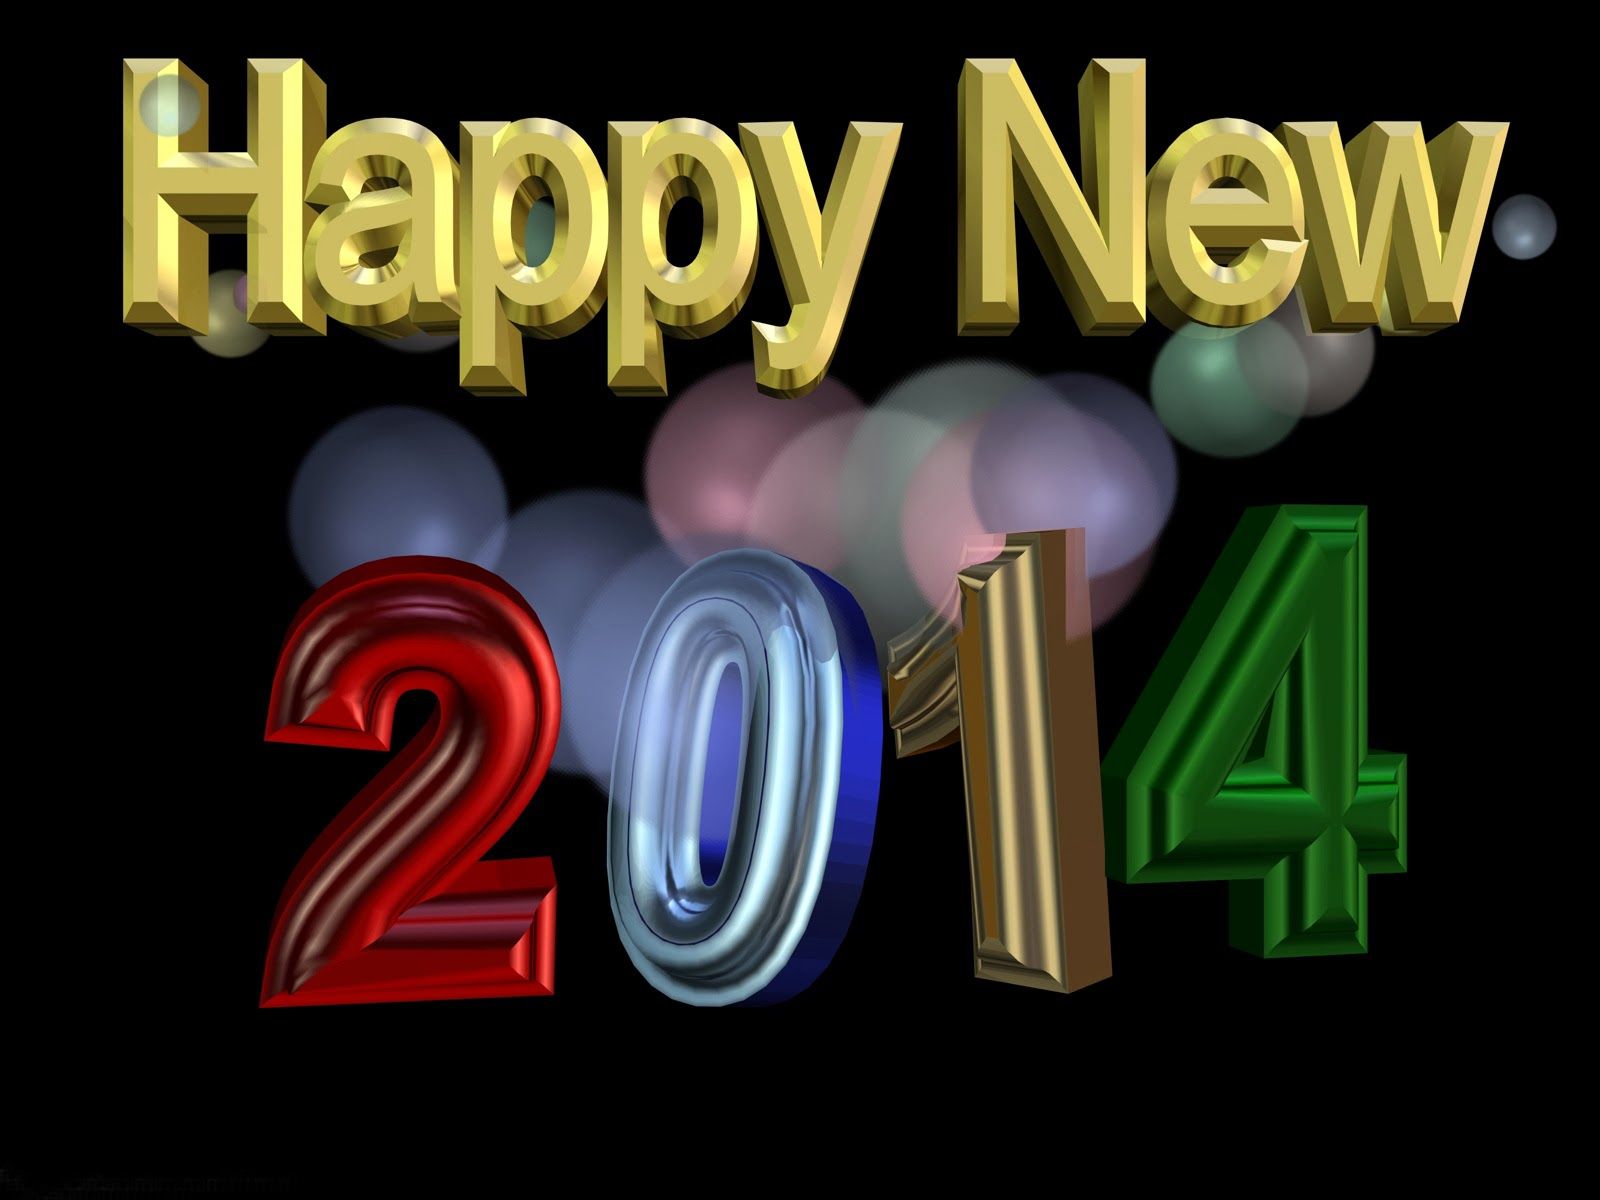 Happy New Year Text Messages 2014